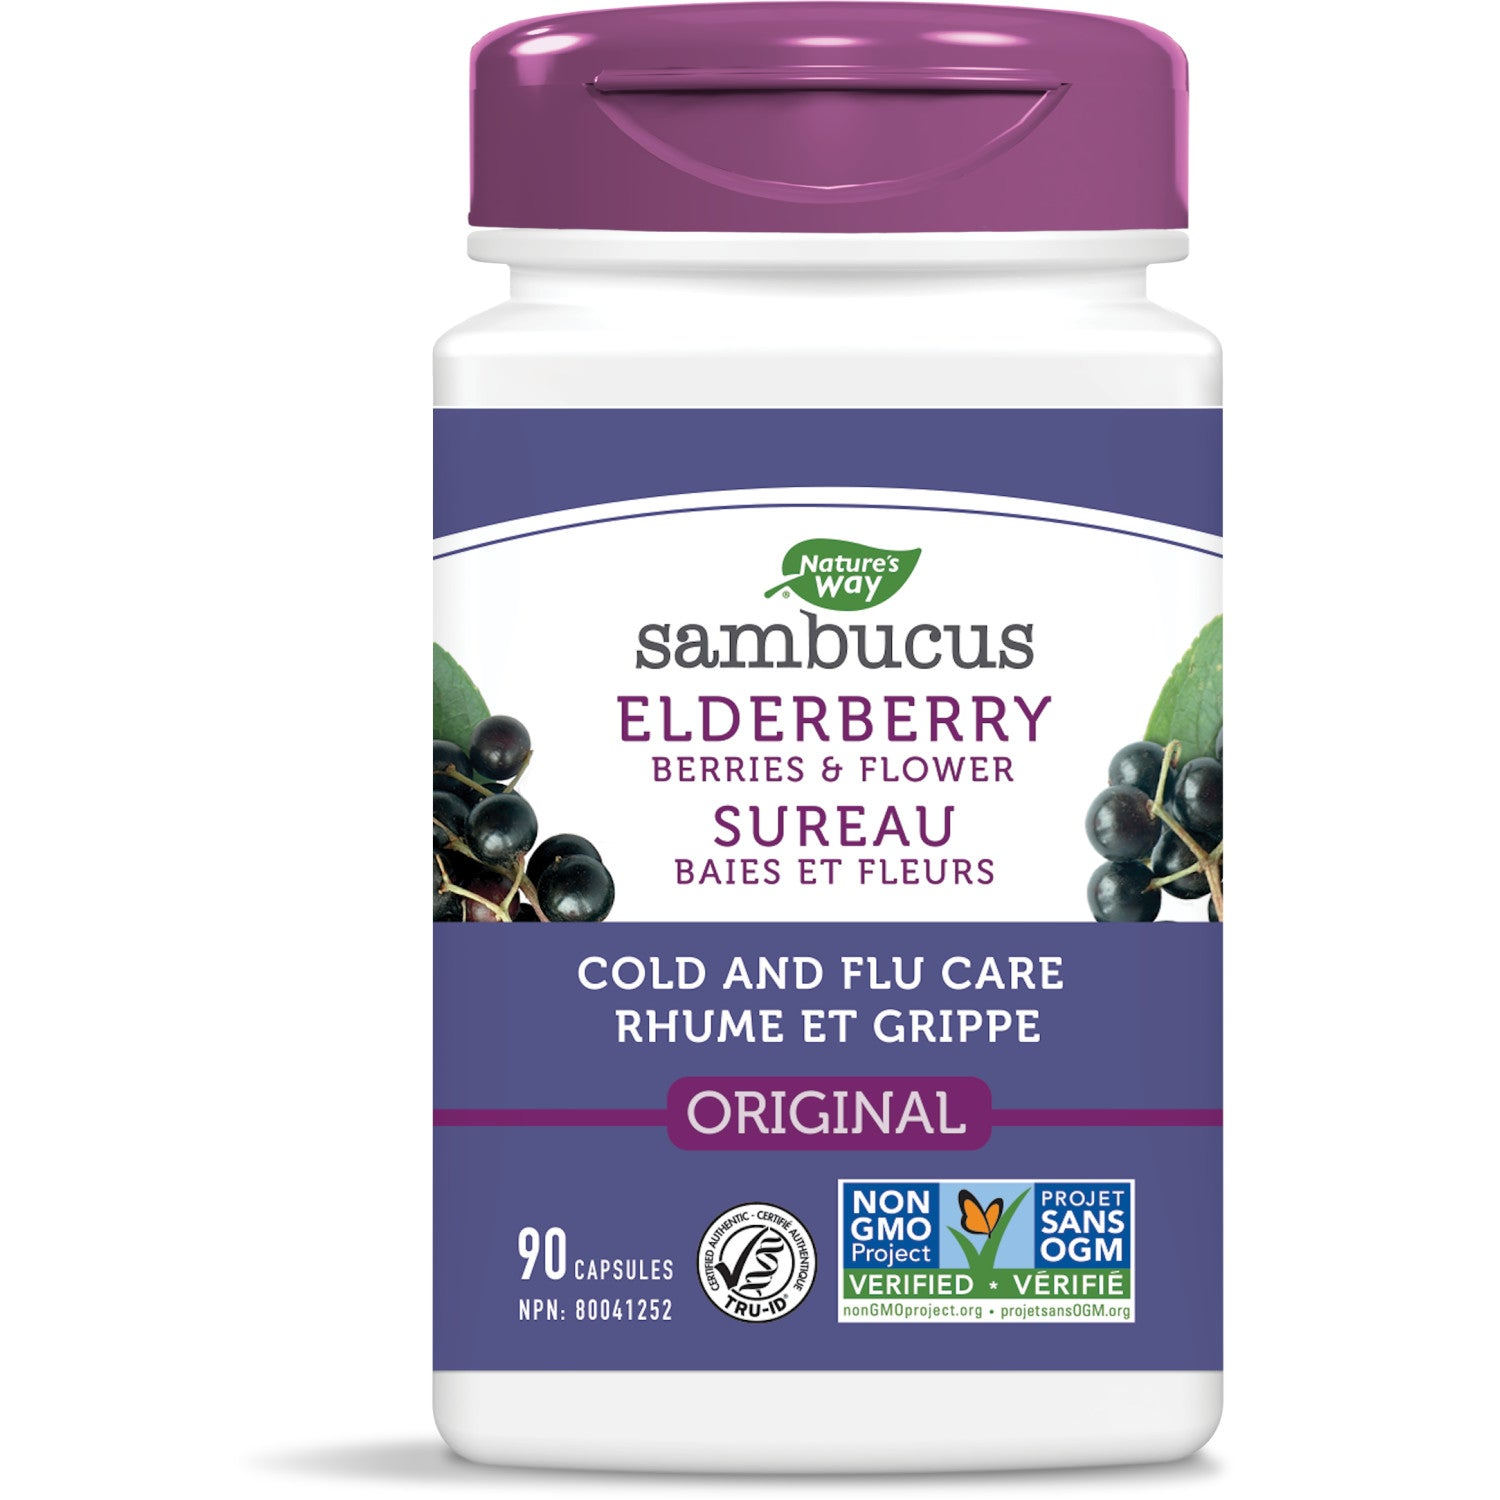 Sambucus Elderberry Cold and Flu Care Capsules / 90 capsules